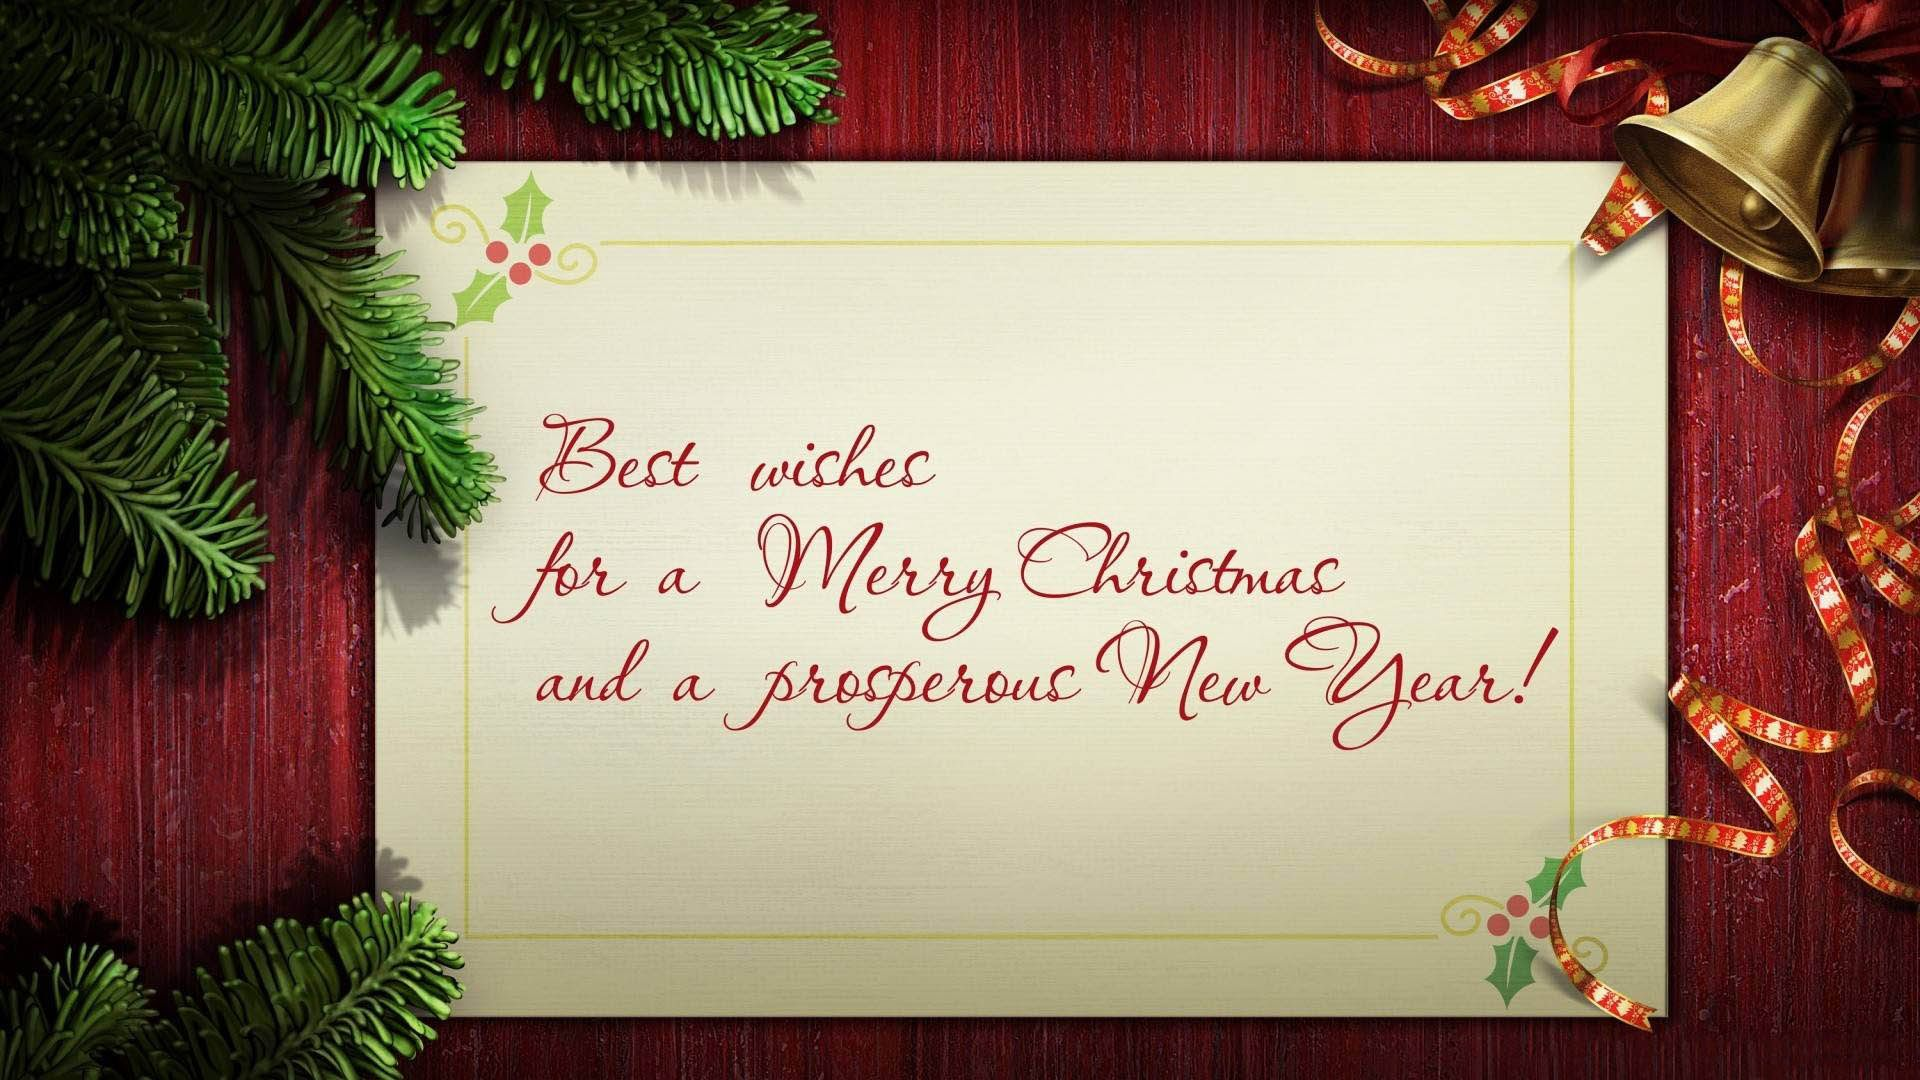 Christmas Cards Hd Wallpapers These Wallpaper Backgrounds Are Free